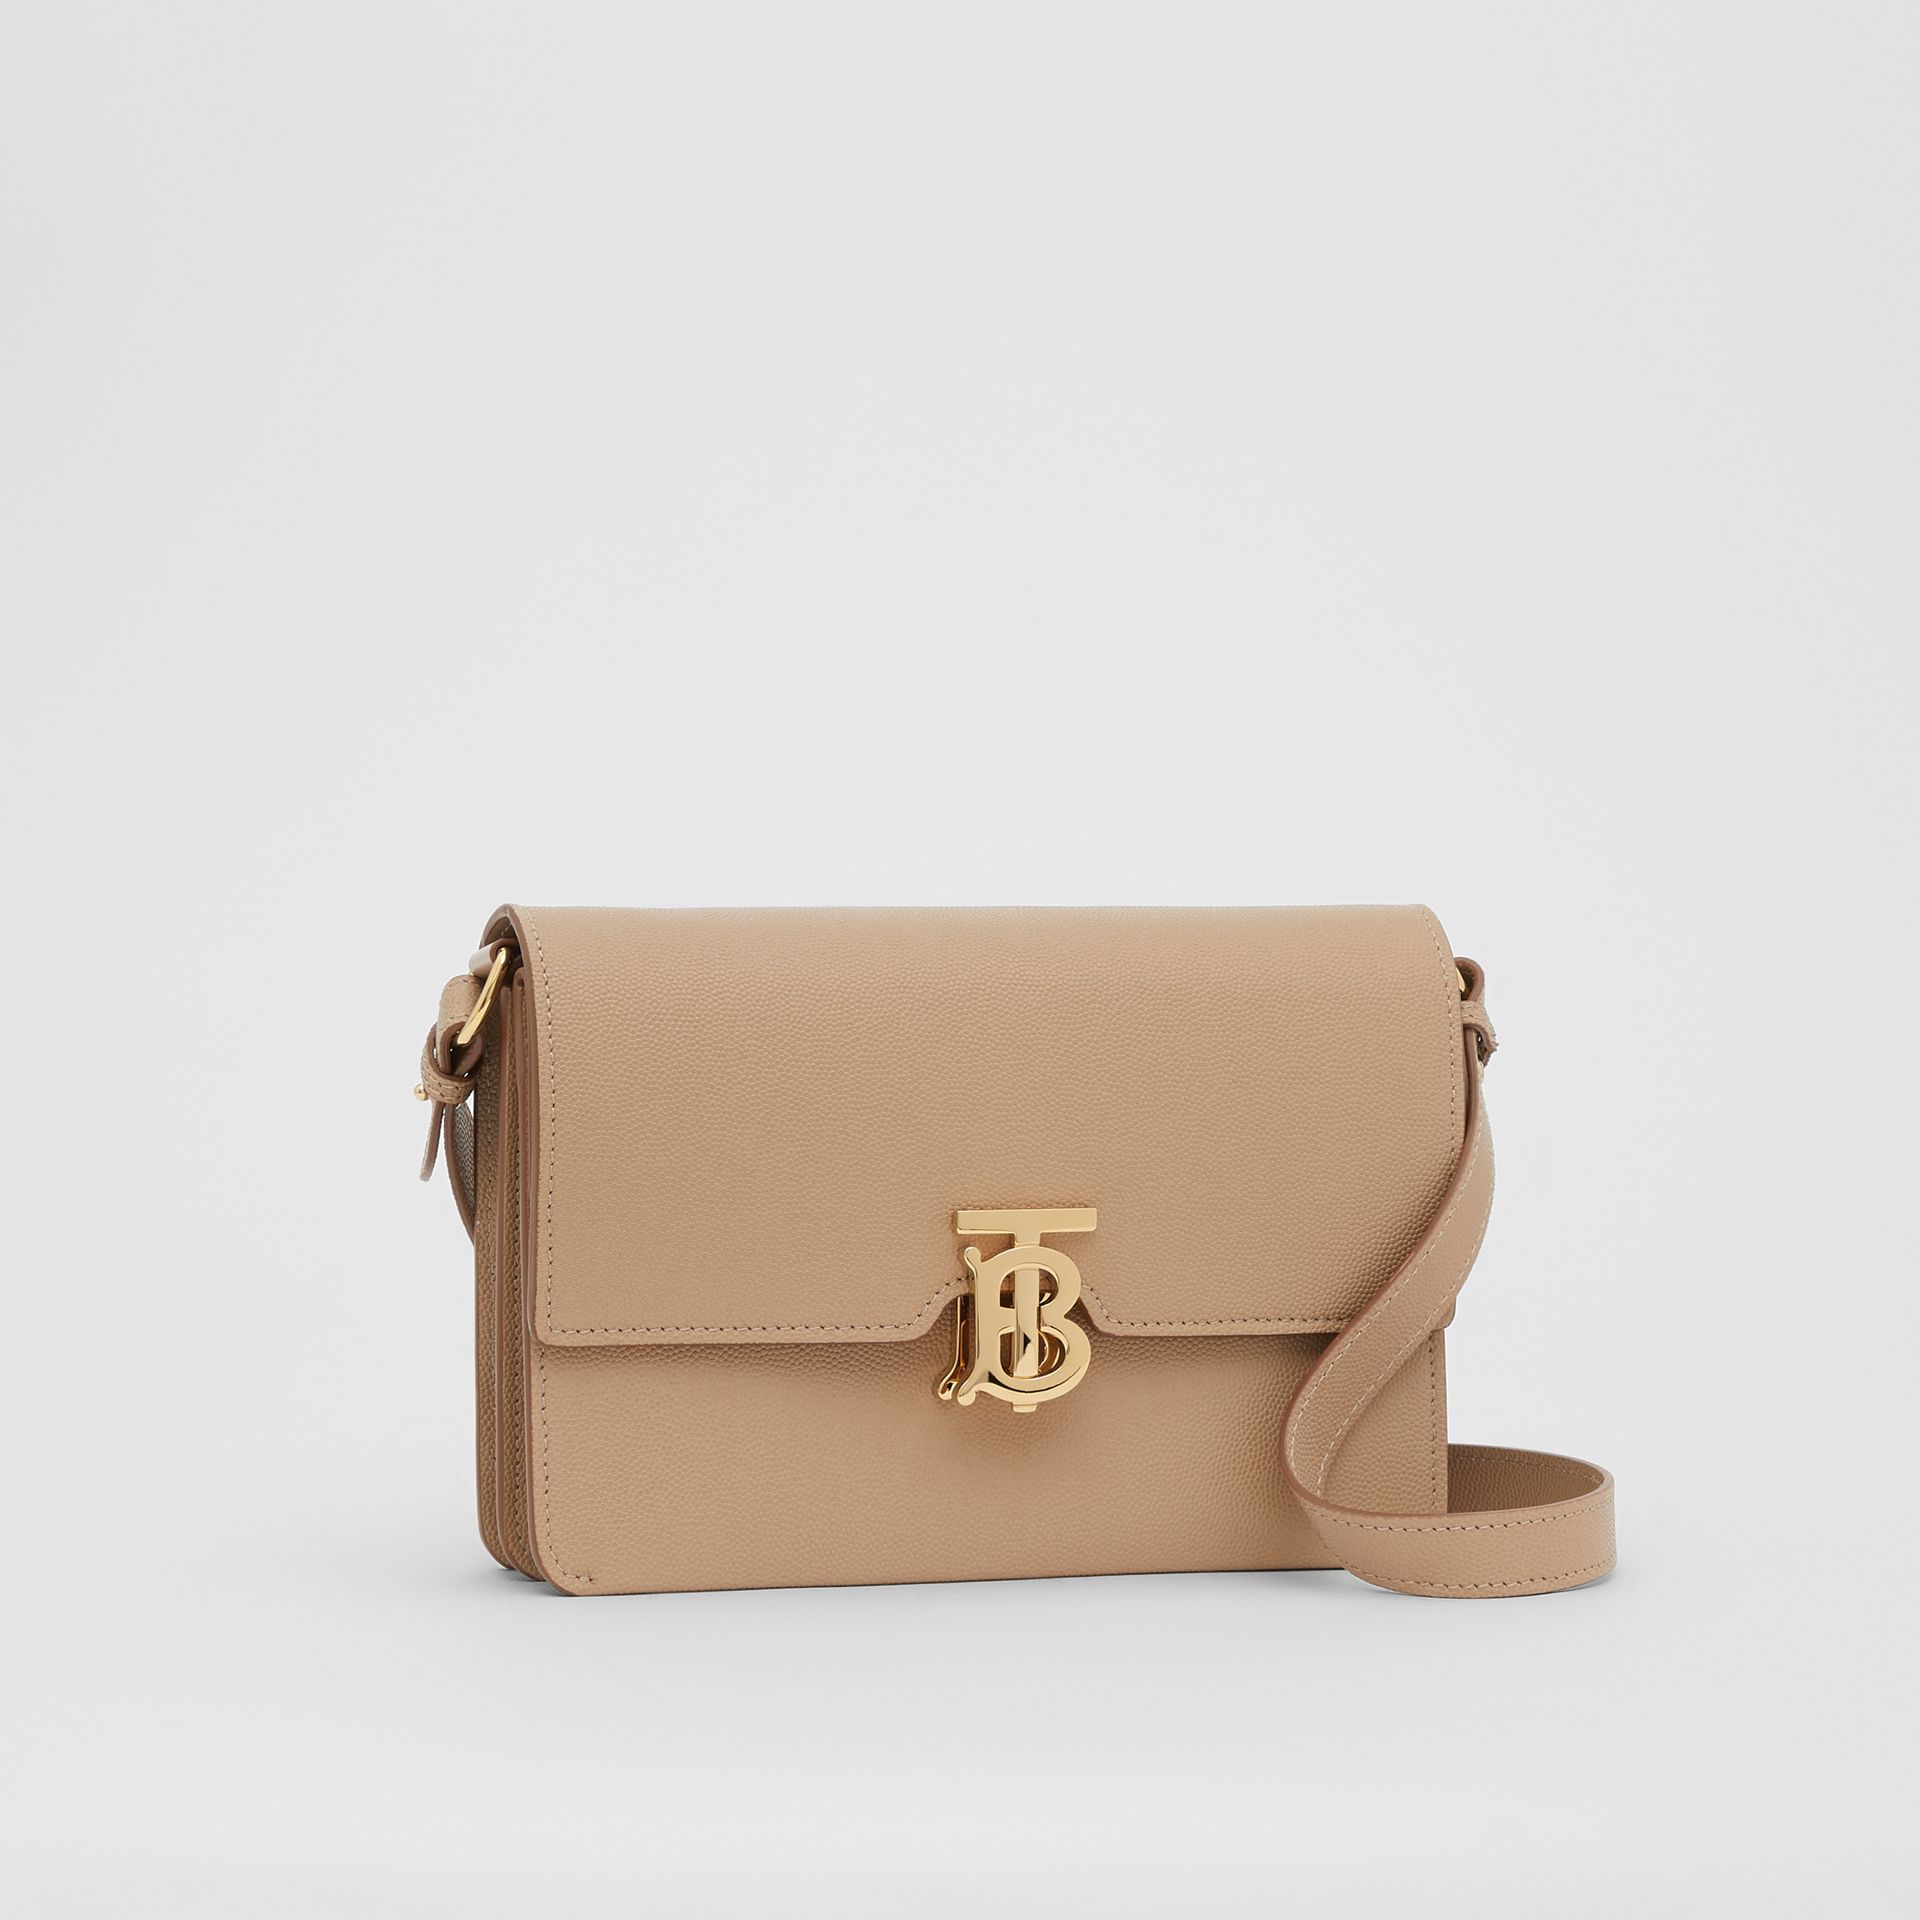 Small Monogram Motif Leather Crossbody Bag in Archive Beige - Women | Burberry Hong Kong S.A.R - gallery image 4